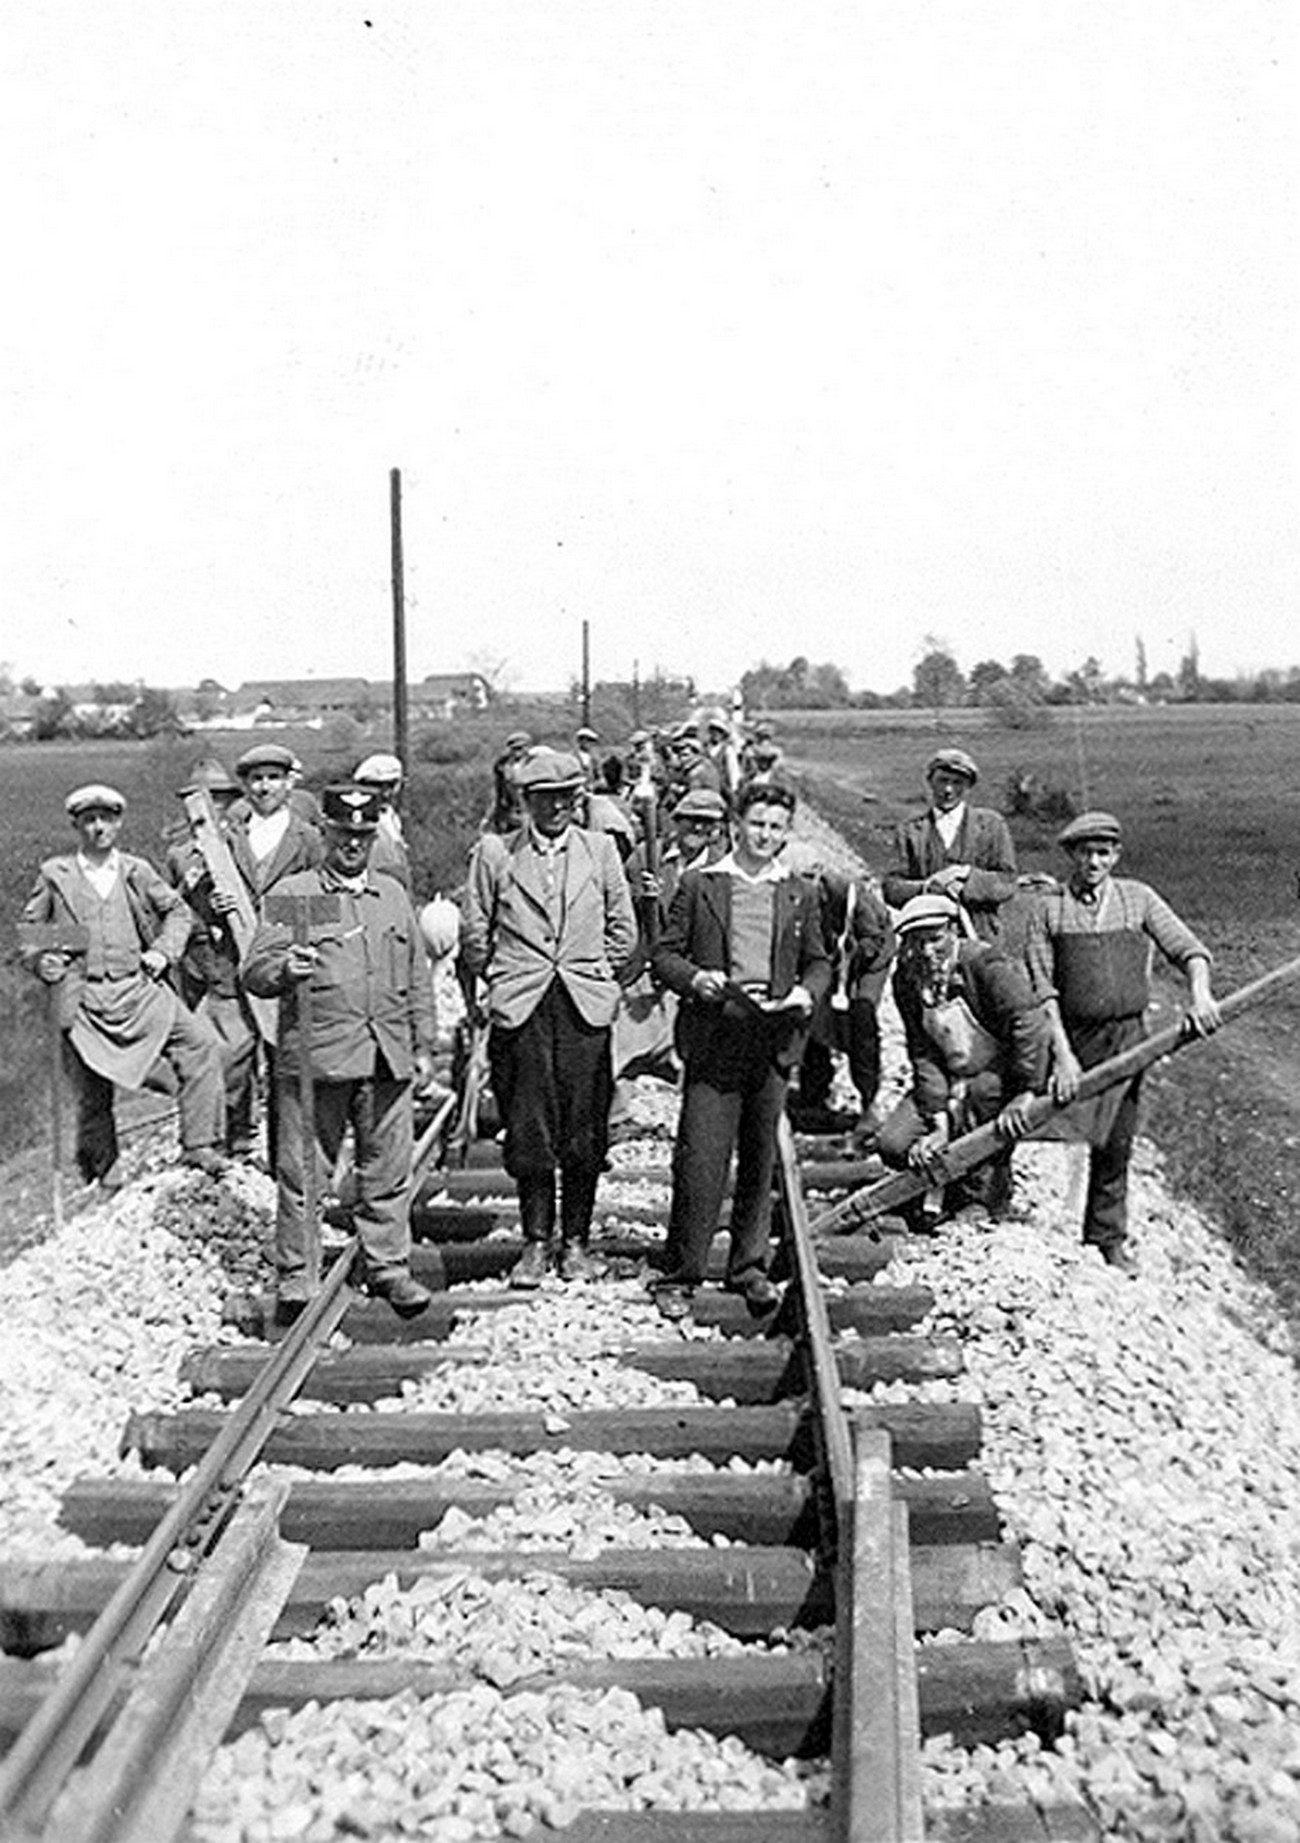 After the annexation of Prekmurje to Hungary, the rail link to the interior of Hungary was re-established. The picture shows workers laying the tracks at Hodoš in 1941. Source: private archive of the Bočkorec family.